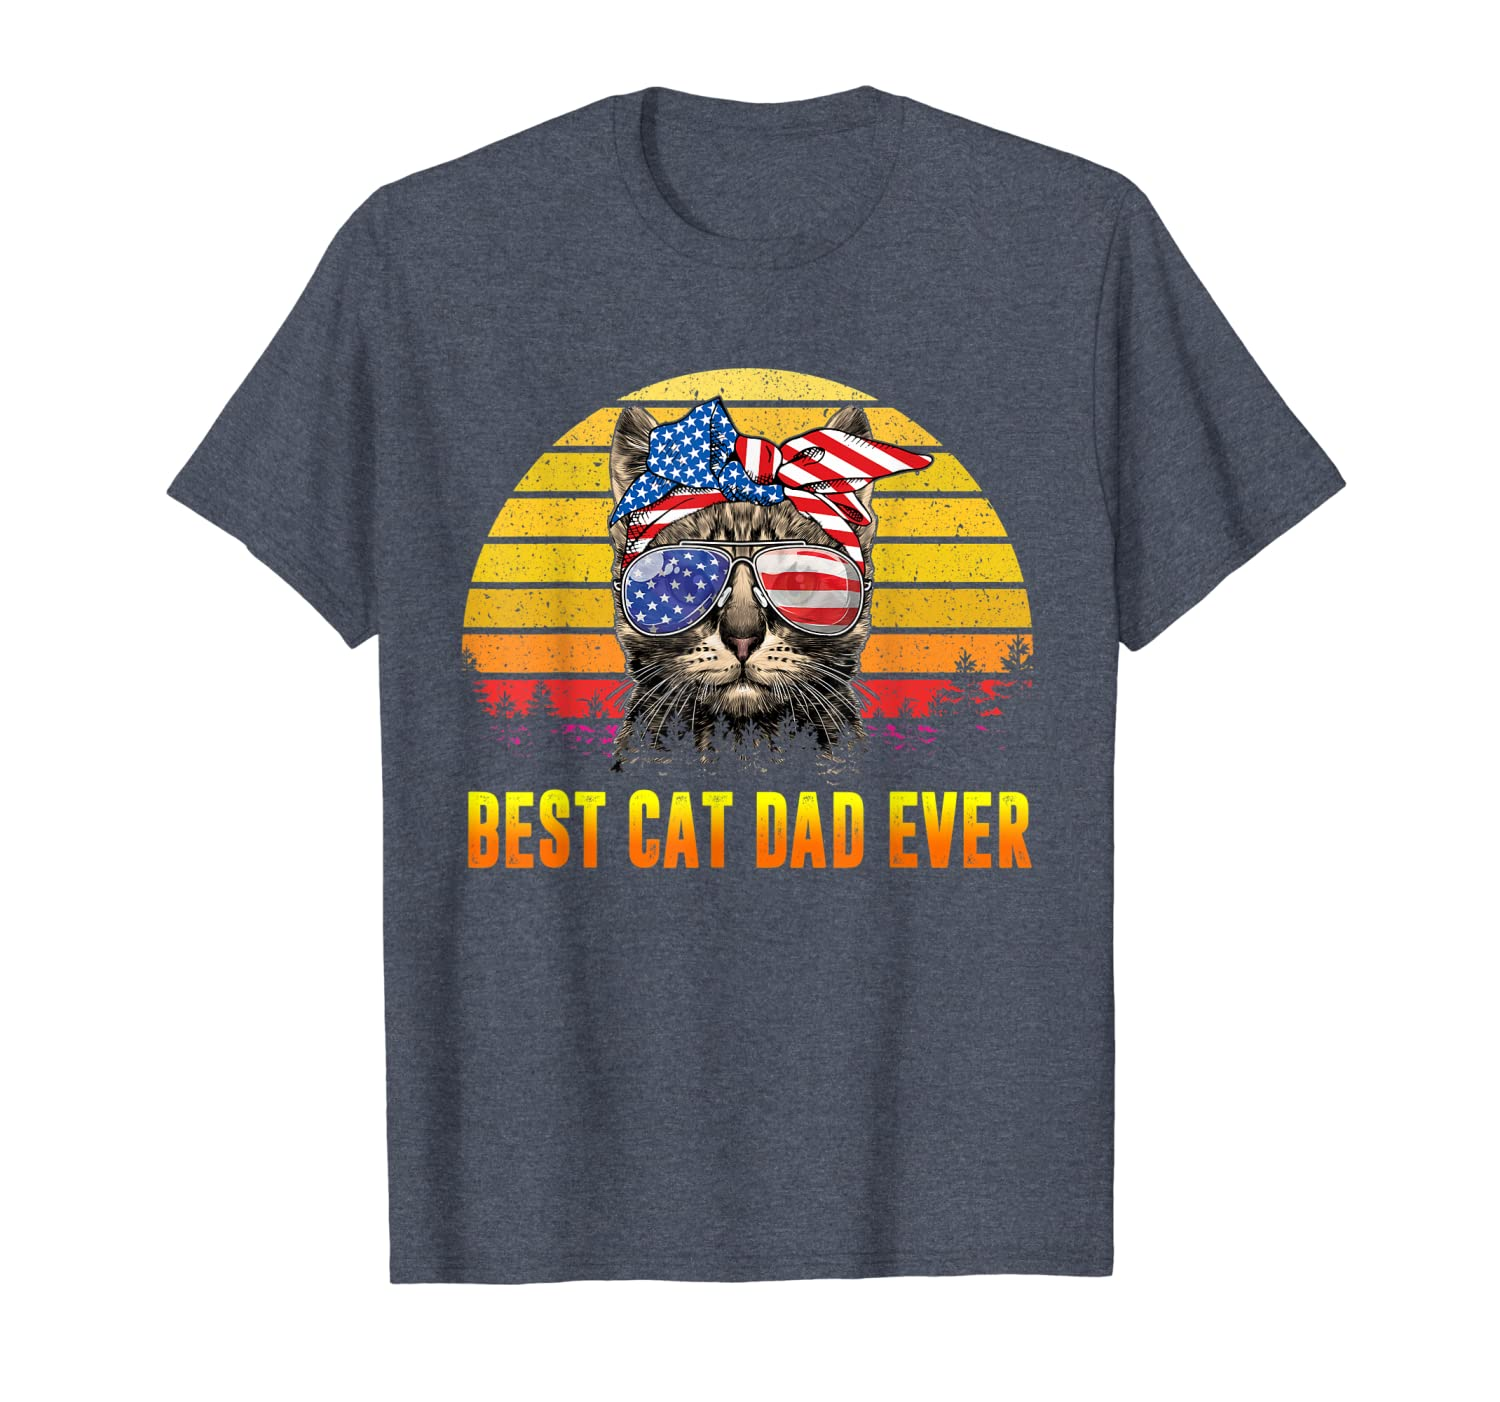 Vintage Best Cat Dad Ever Fathers Day Gifts 4th of July Men T-Shirt Unisex Tshirt